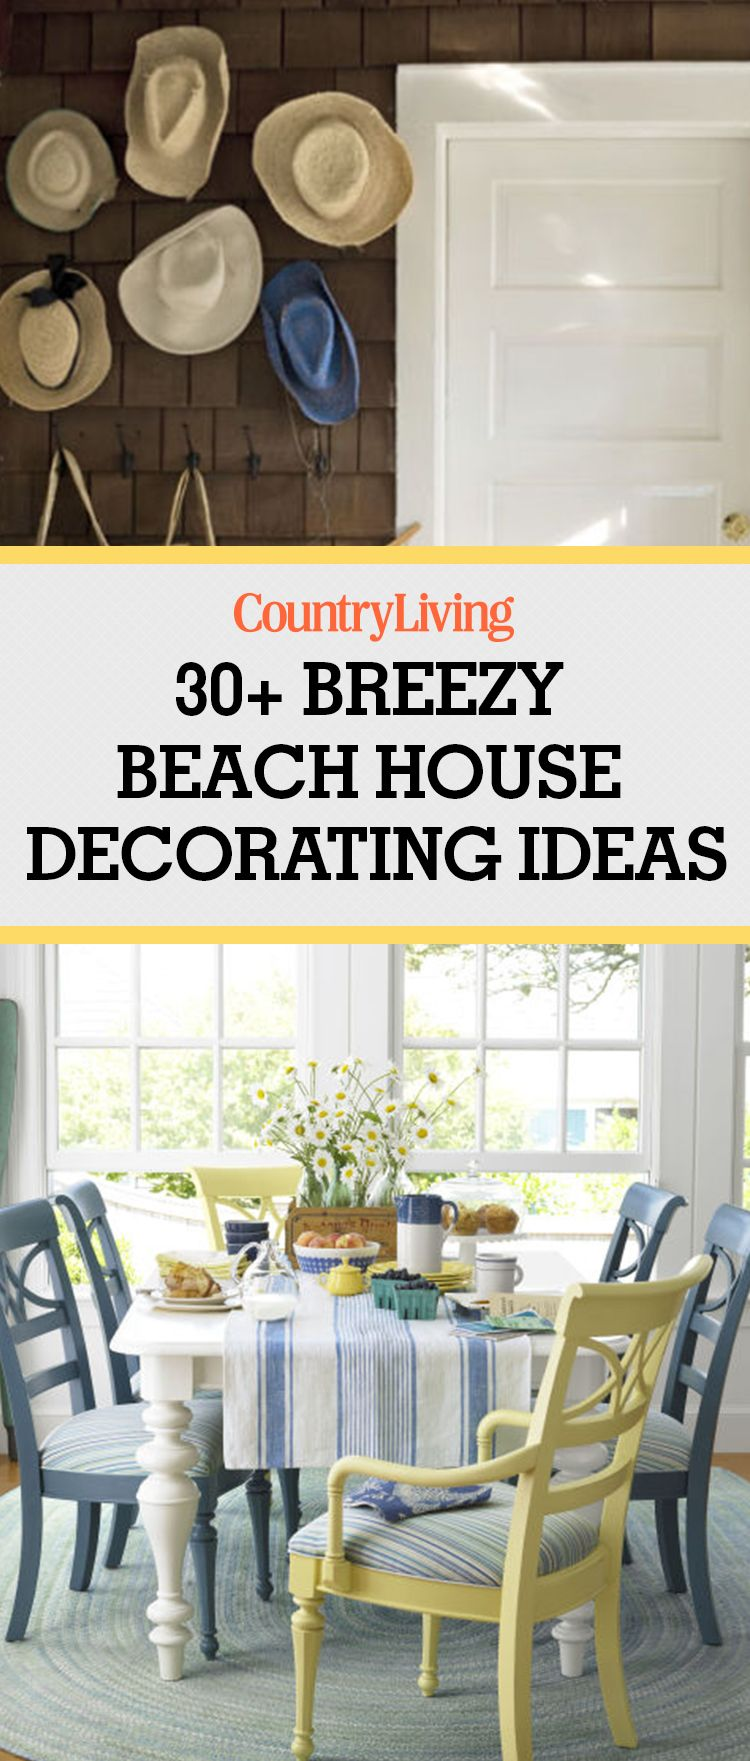 decorating cottage room style ideas seaside decor homes for beach coastal decoration cottages